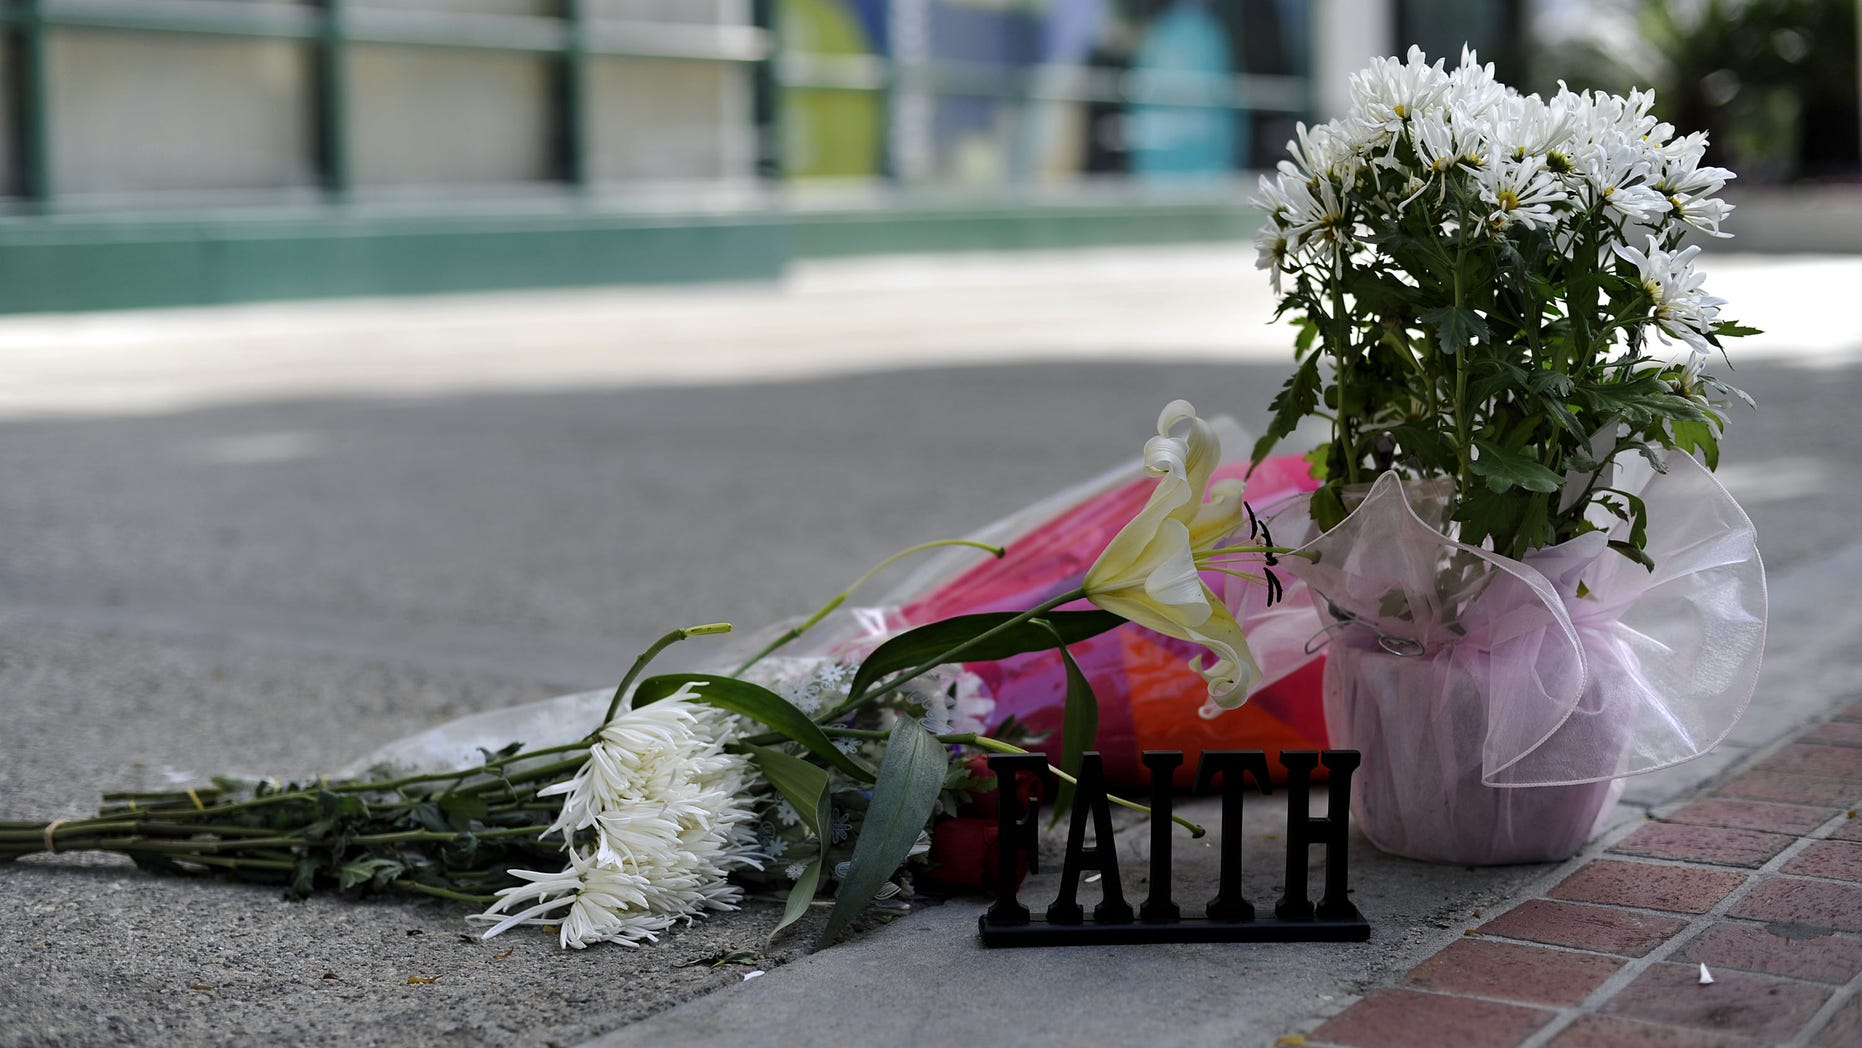 LOS ANGELES, CA - FEBRUARY 28: Flowers are placed in front of the building at the 900 block of South Flower Street where Marie Osmonds son Michael Blosil committed suicide on February 28, 2010 in Los Angeles, California. (Photo by Toby Canham/Getty Images)